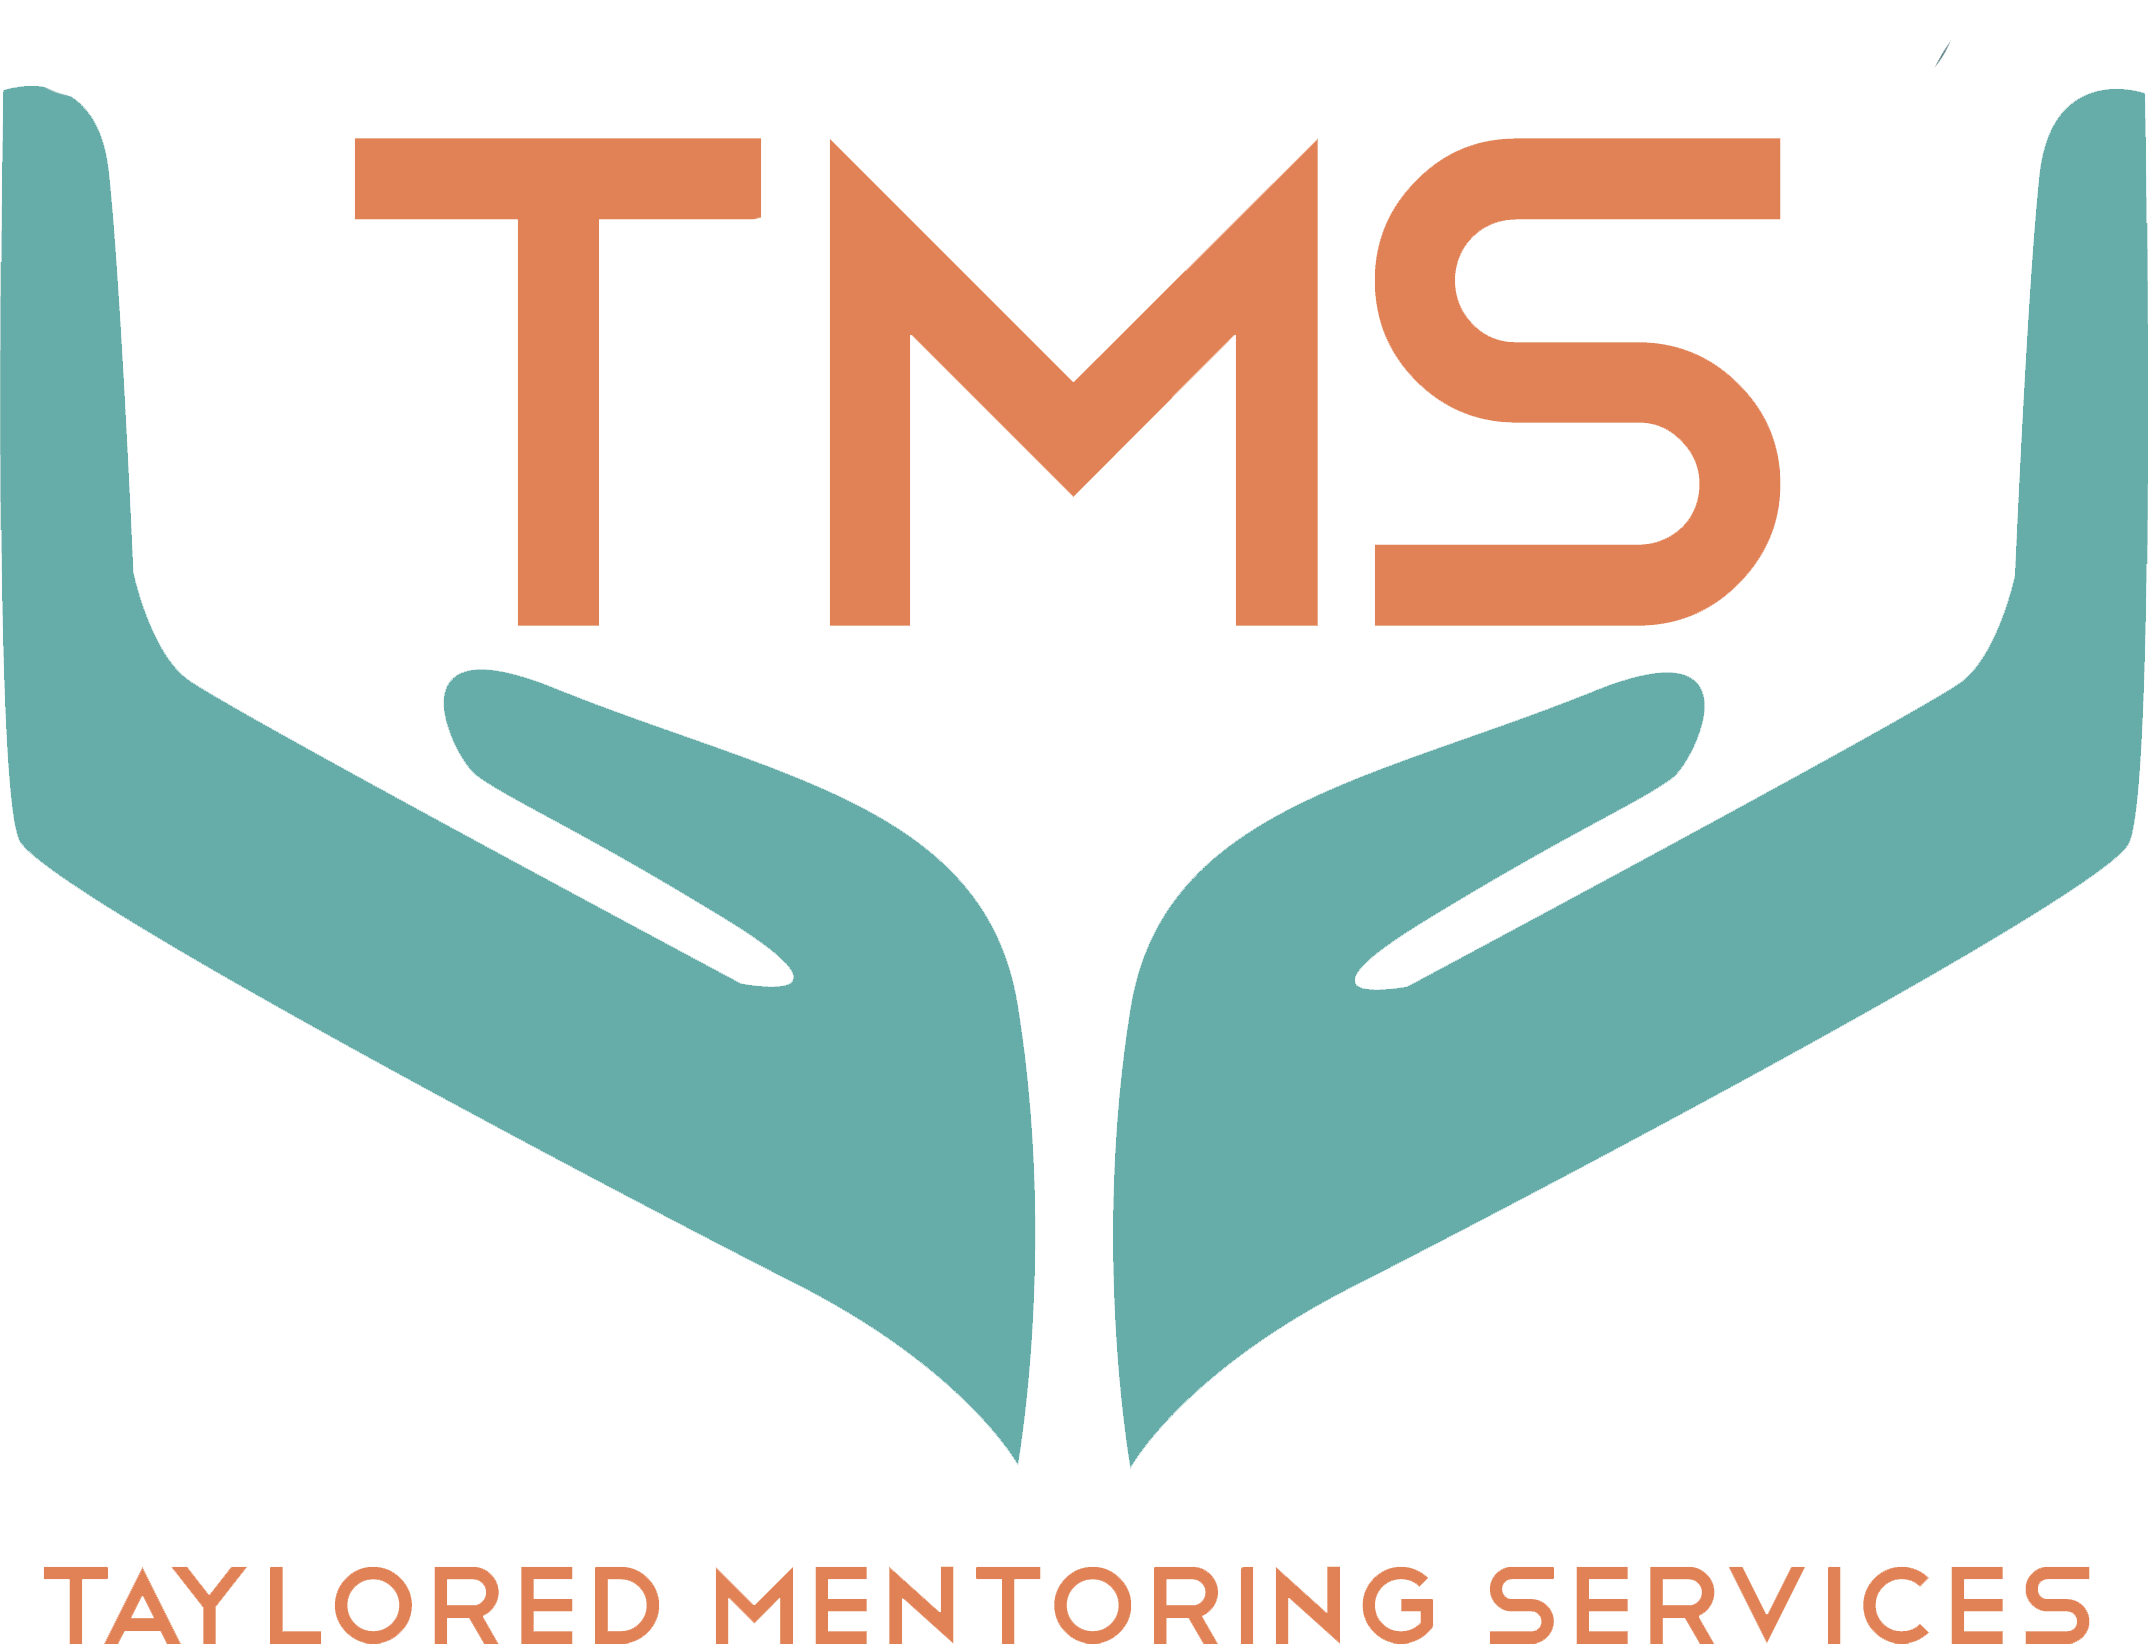 Tayored Mentoring Services